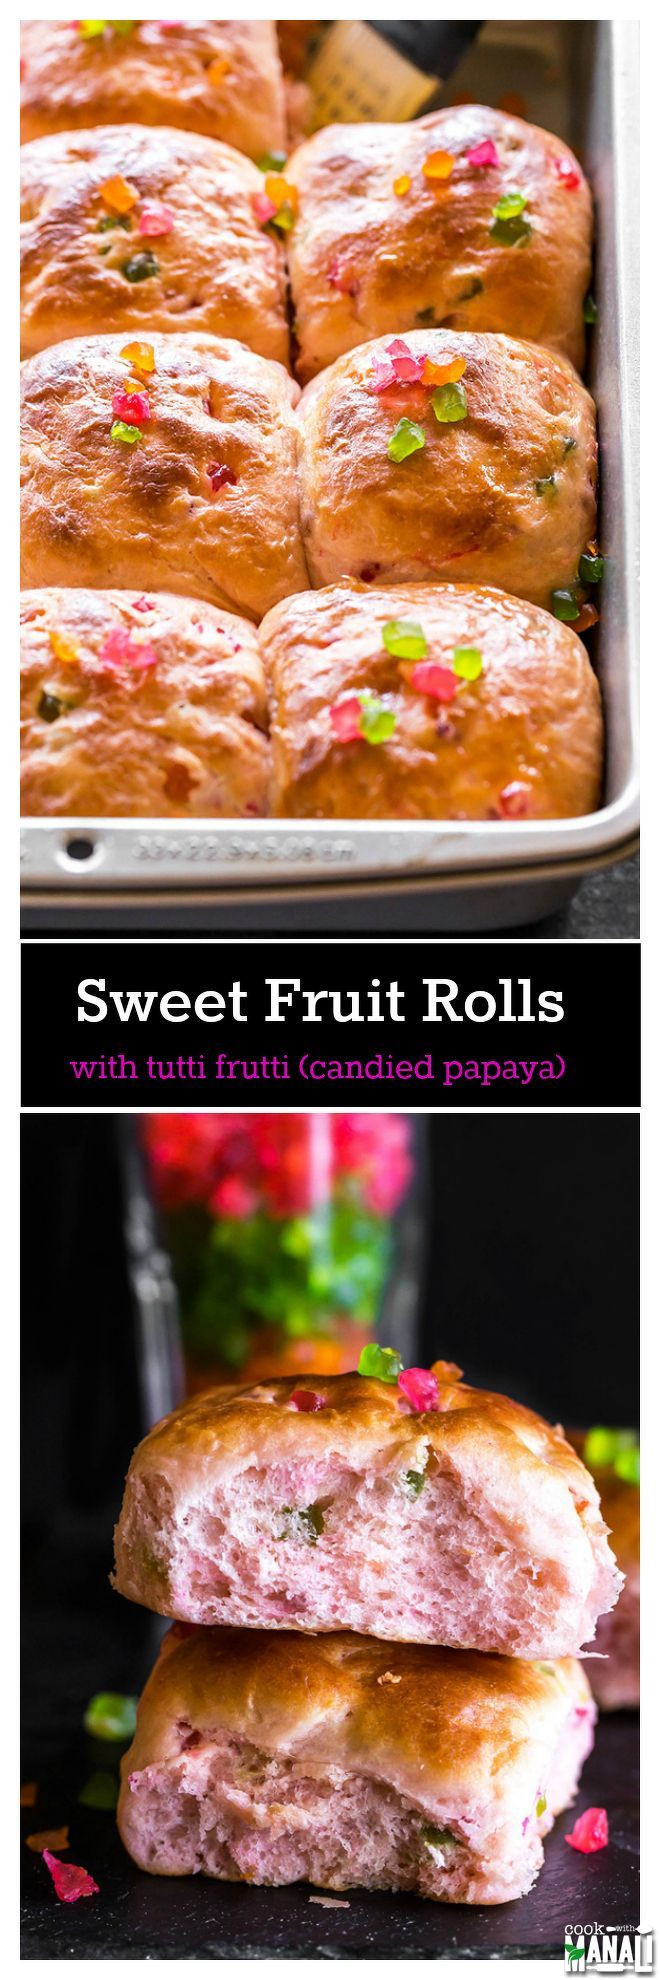 Soft and eggless Sweet Fruit Rolls are filled with candied dried papaya. These are best enjoyed with butter or jam with a cup of chai! Find the recipe on www.cookwithmanali.com